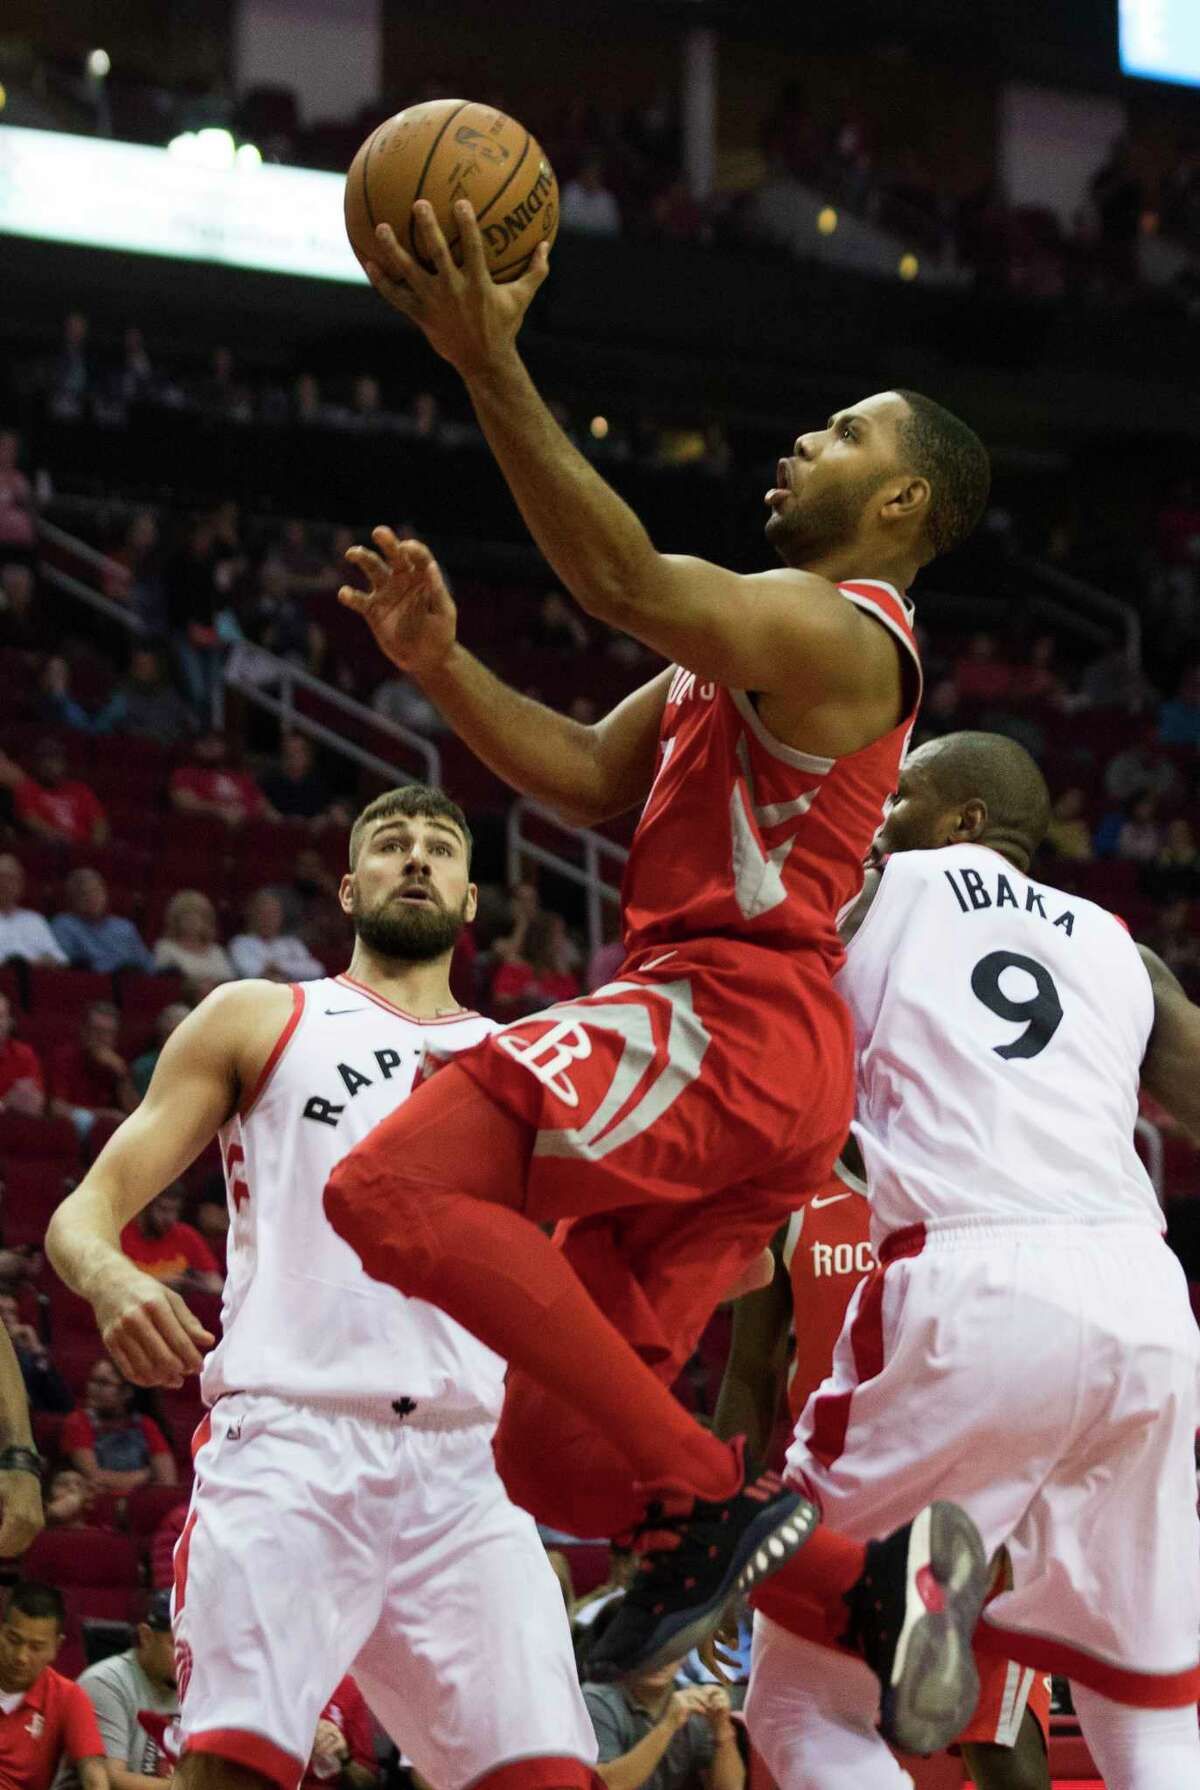 Houston Rockets guard Eric Gordon (10) drives to the basket scoring during the first quarter against the Toronto Raptors, Tuesday, Nov. 14, 2017, in Houston.